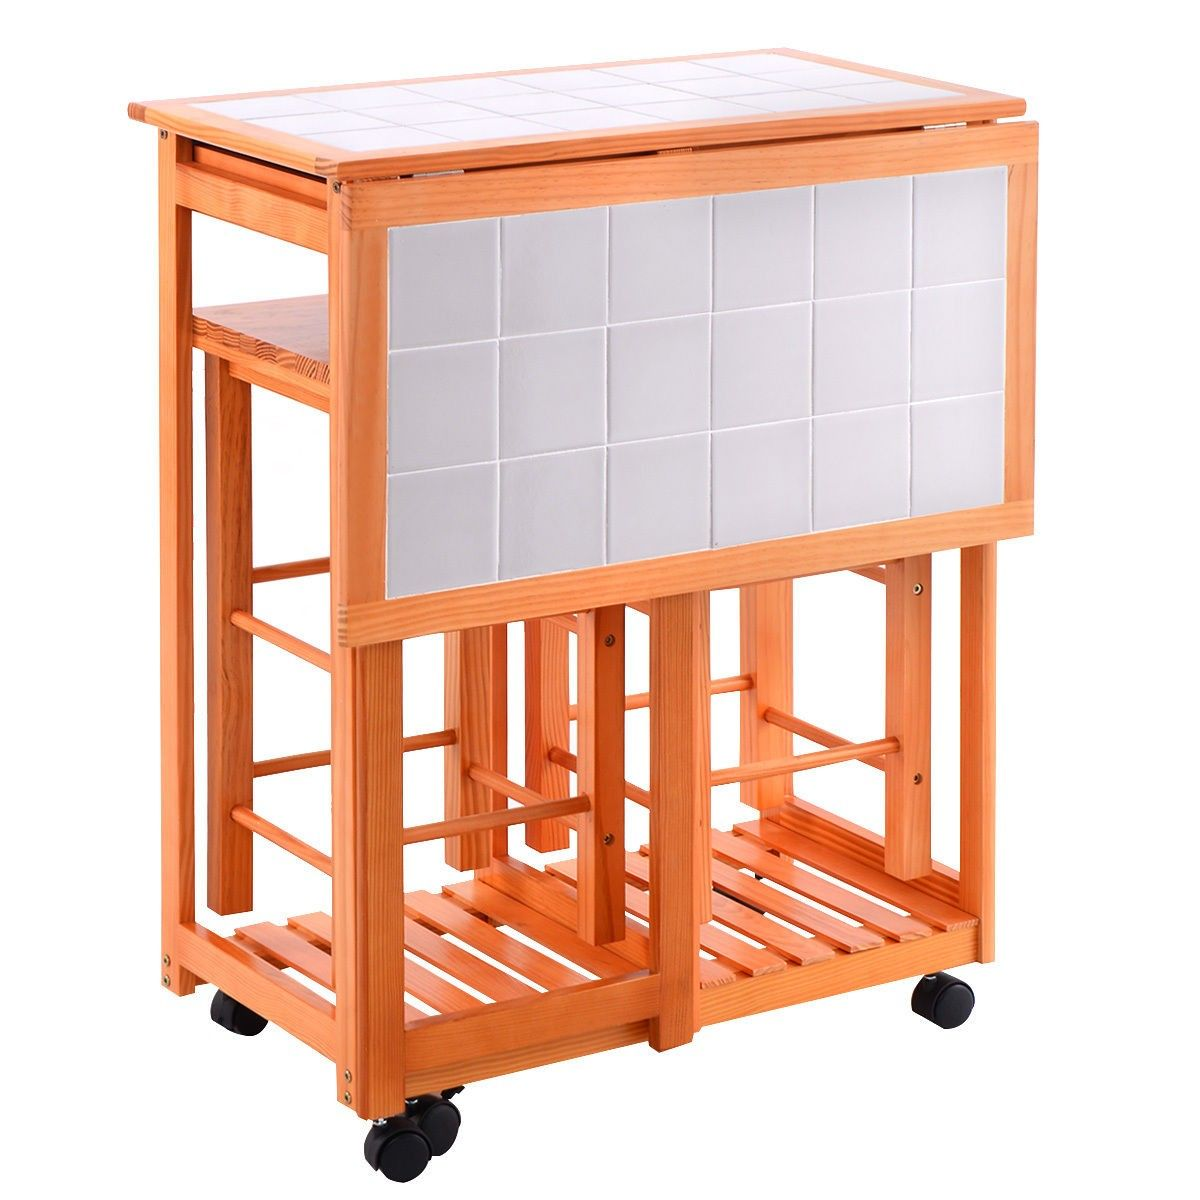 rolling kitchen island trolley cart drop leaf table w 2 stools rolling kitchen island trolley cart drop leaf table w 2 stools home breakfast carts